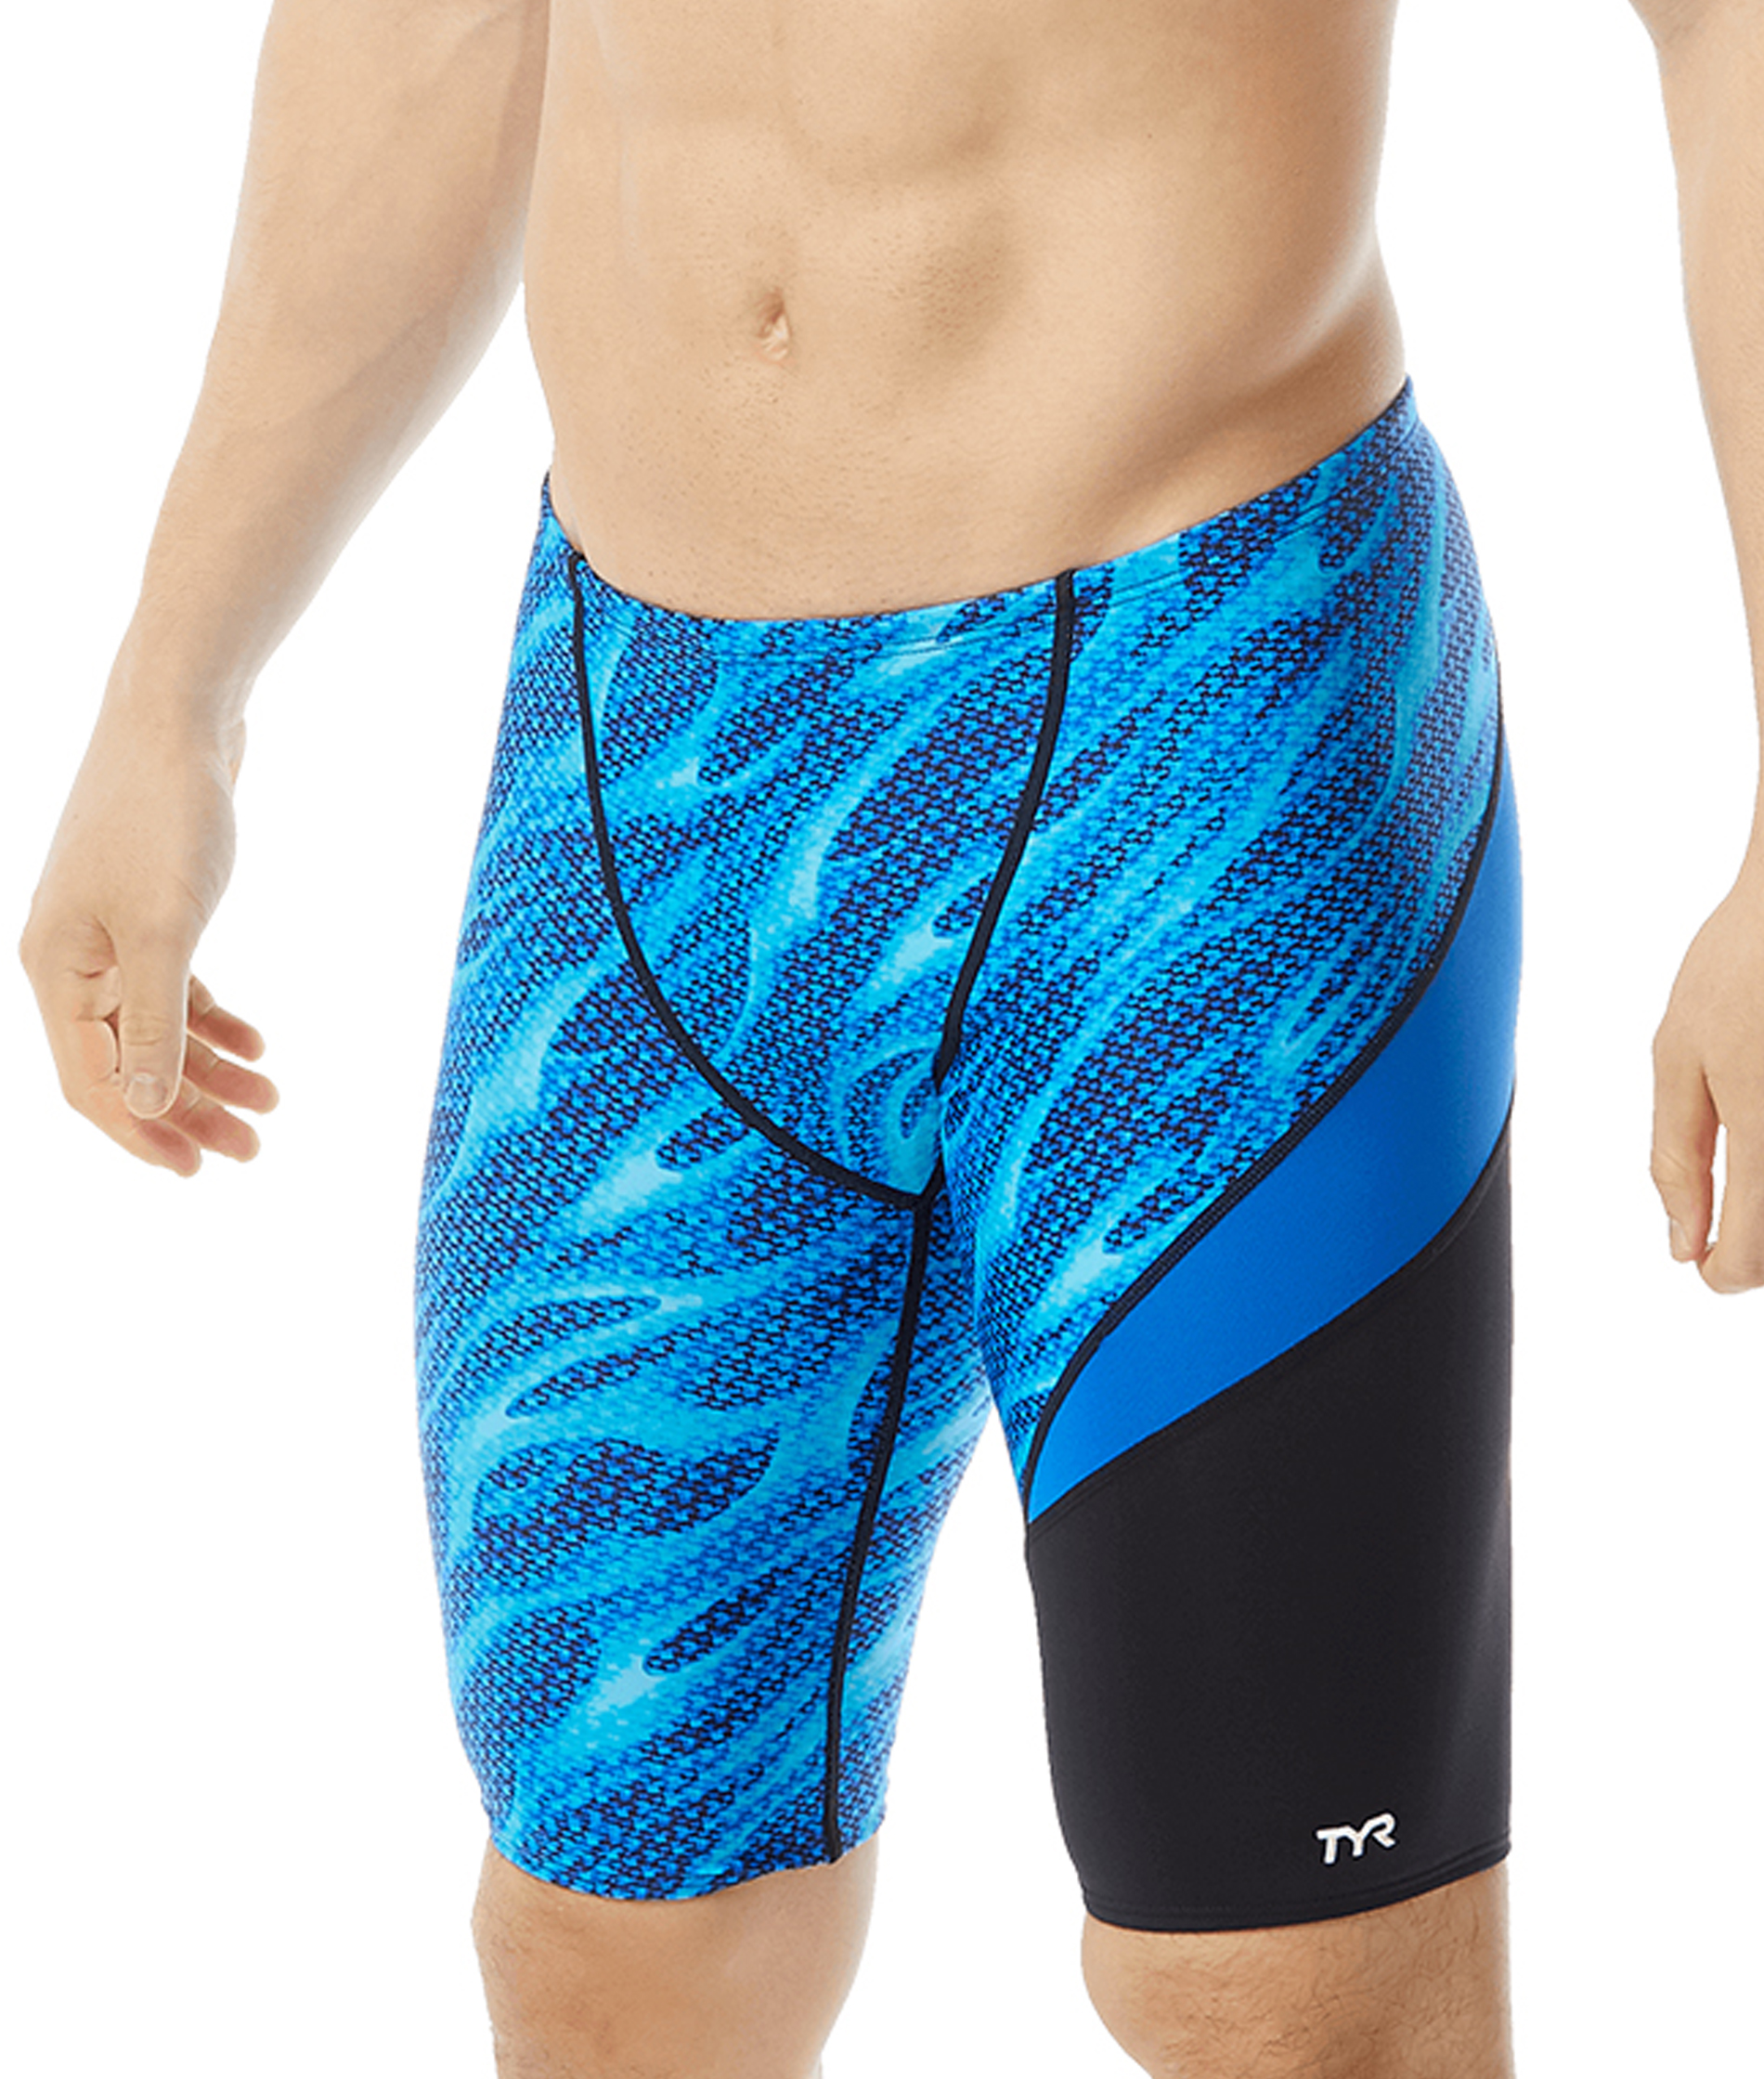 TYR Mens Reaper Wave Jammer - Black/Blue